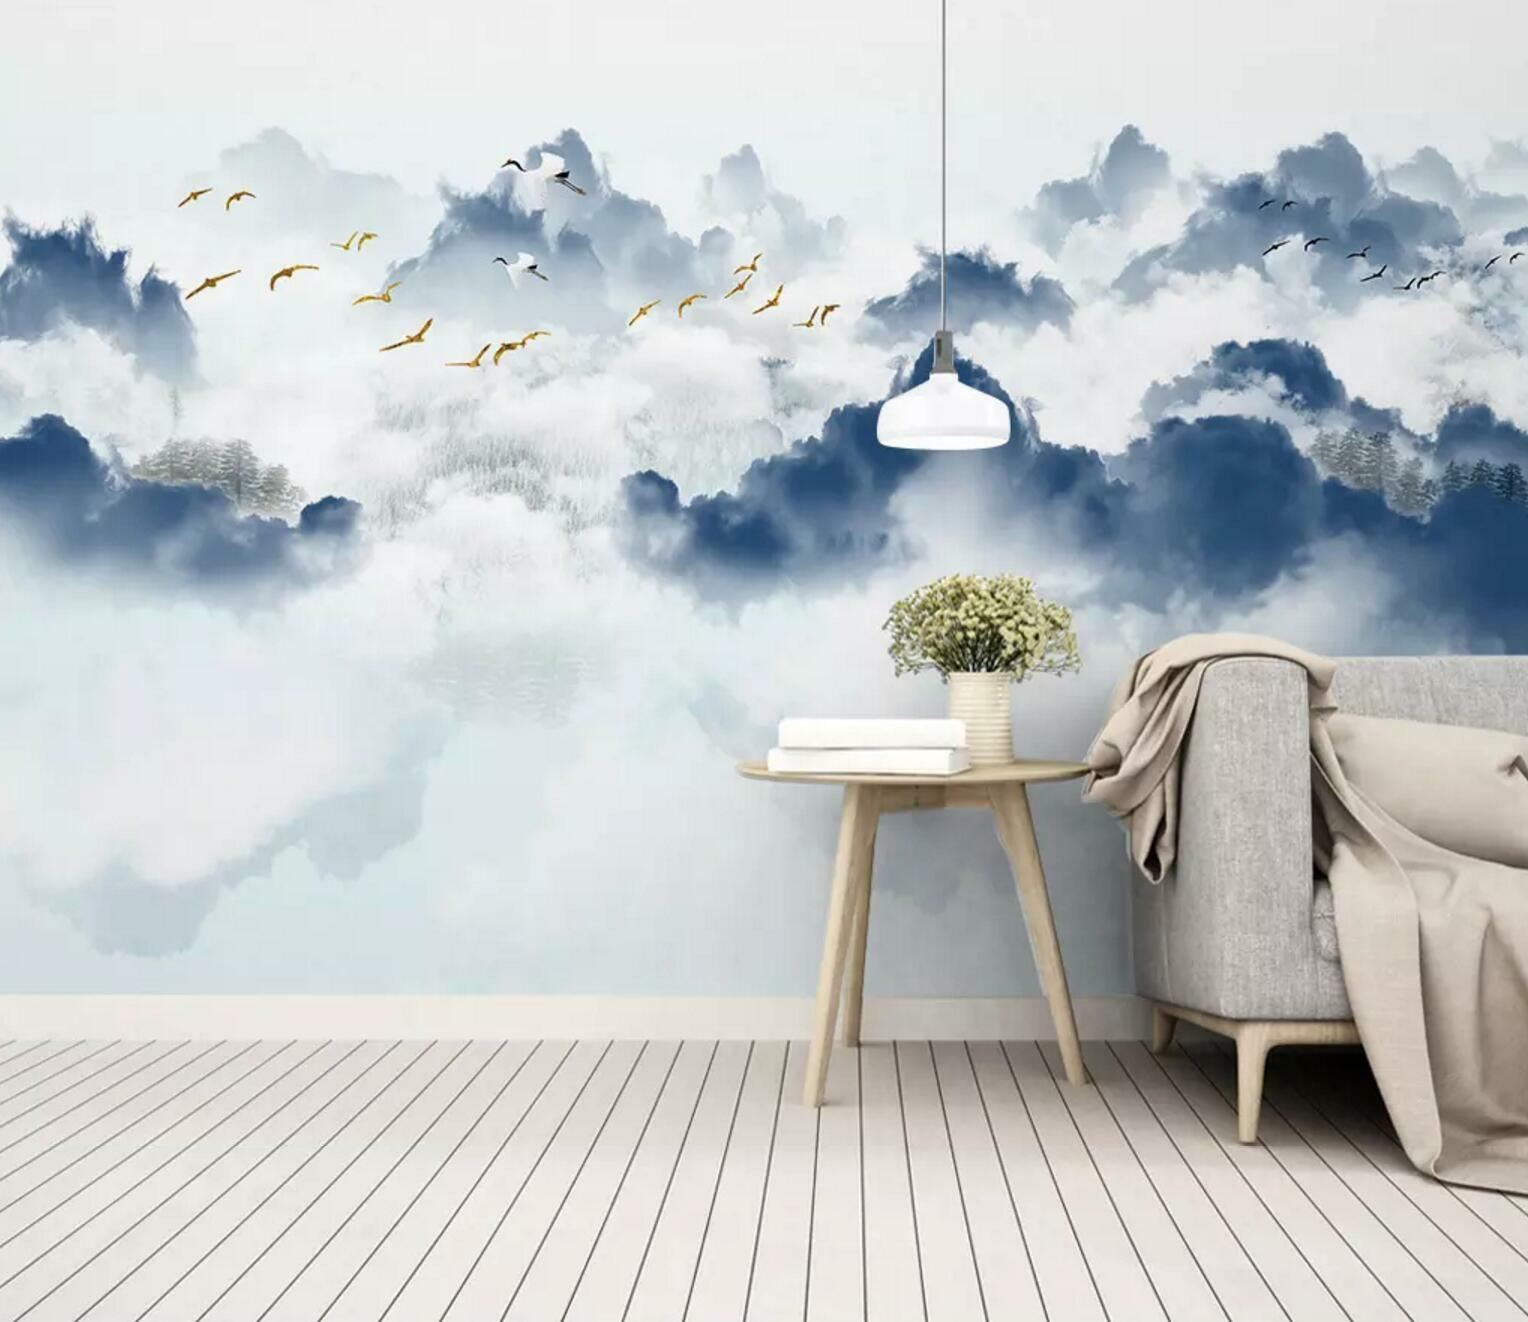 3D Nature Mountain 92 Wall Paper Exclusive MXY Wallpaper Mural Decal Indoor Wall